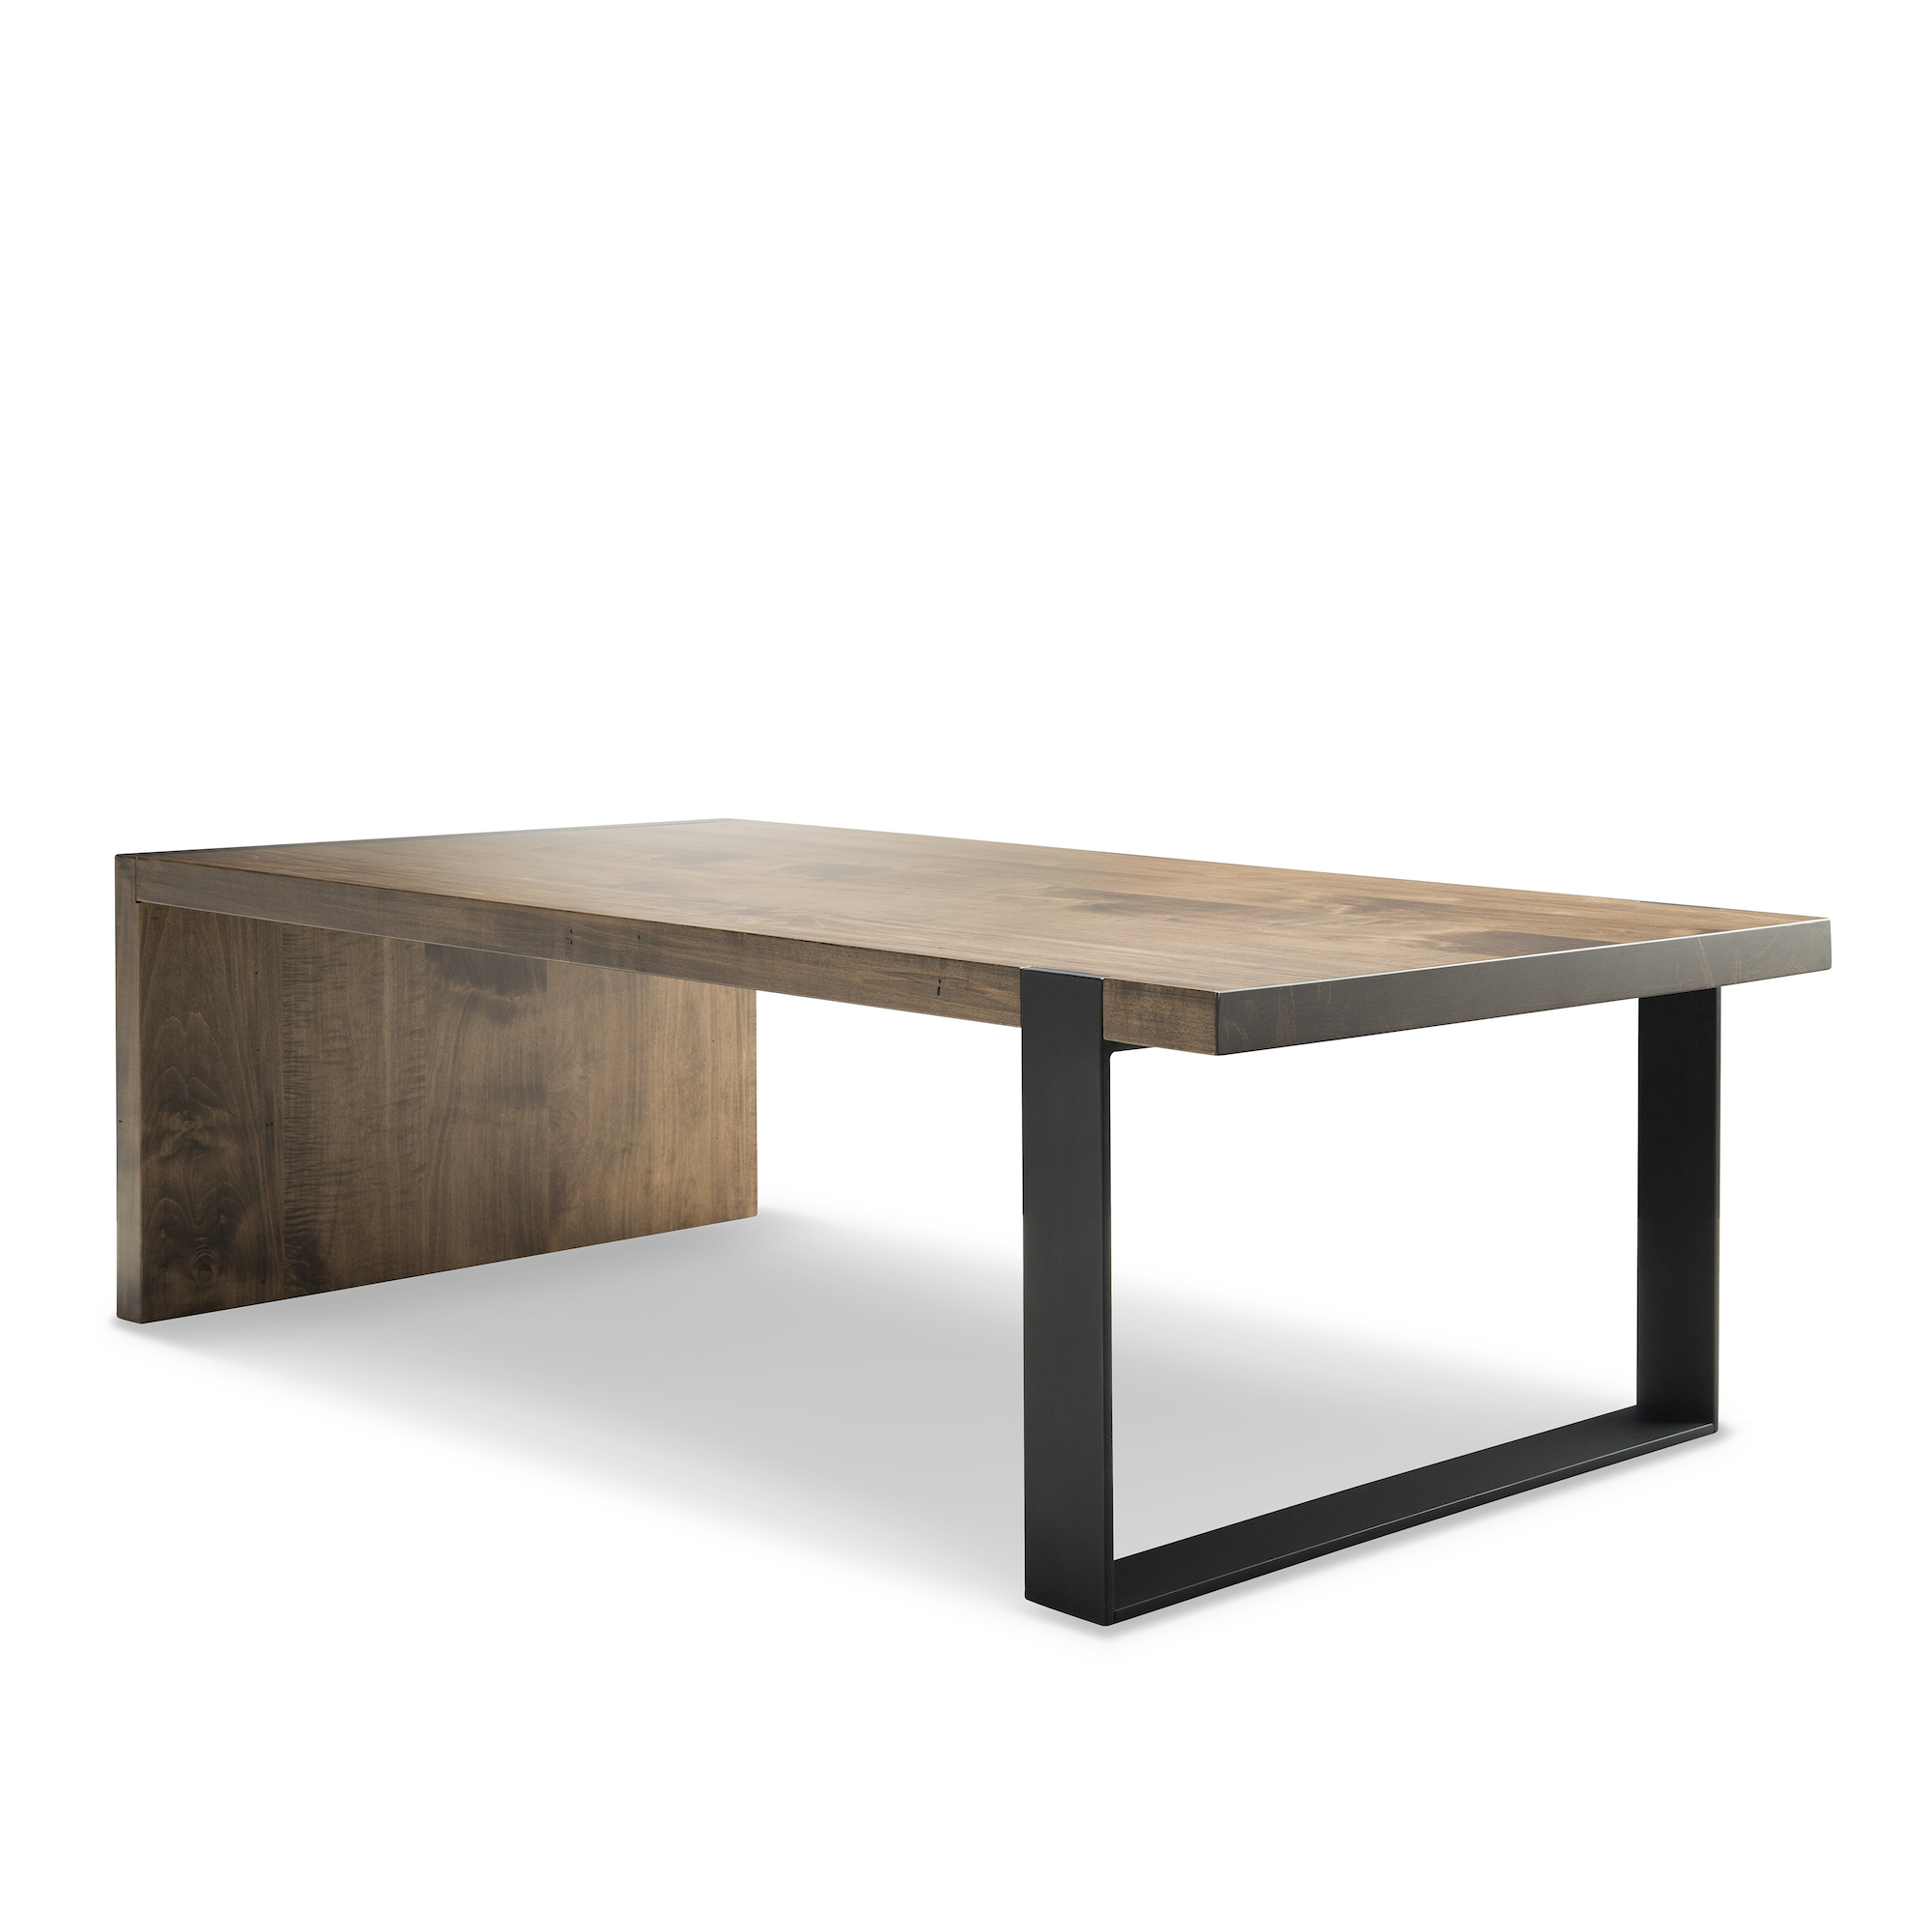 Parkdale_Coffee_Table_Angled.jpg